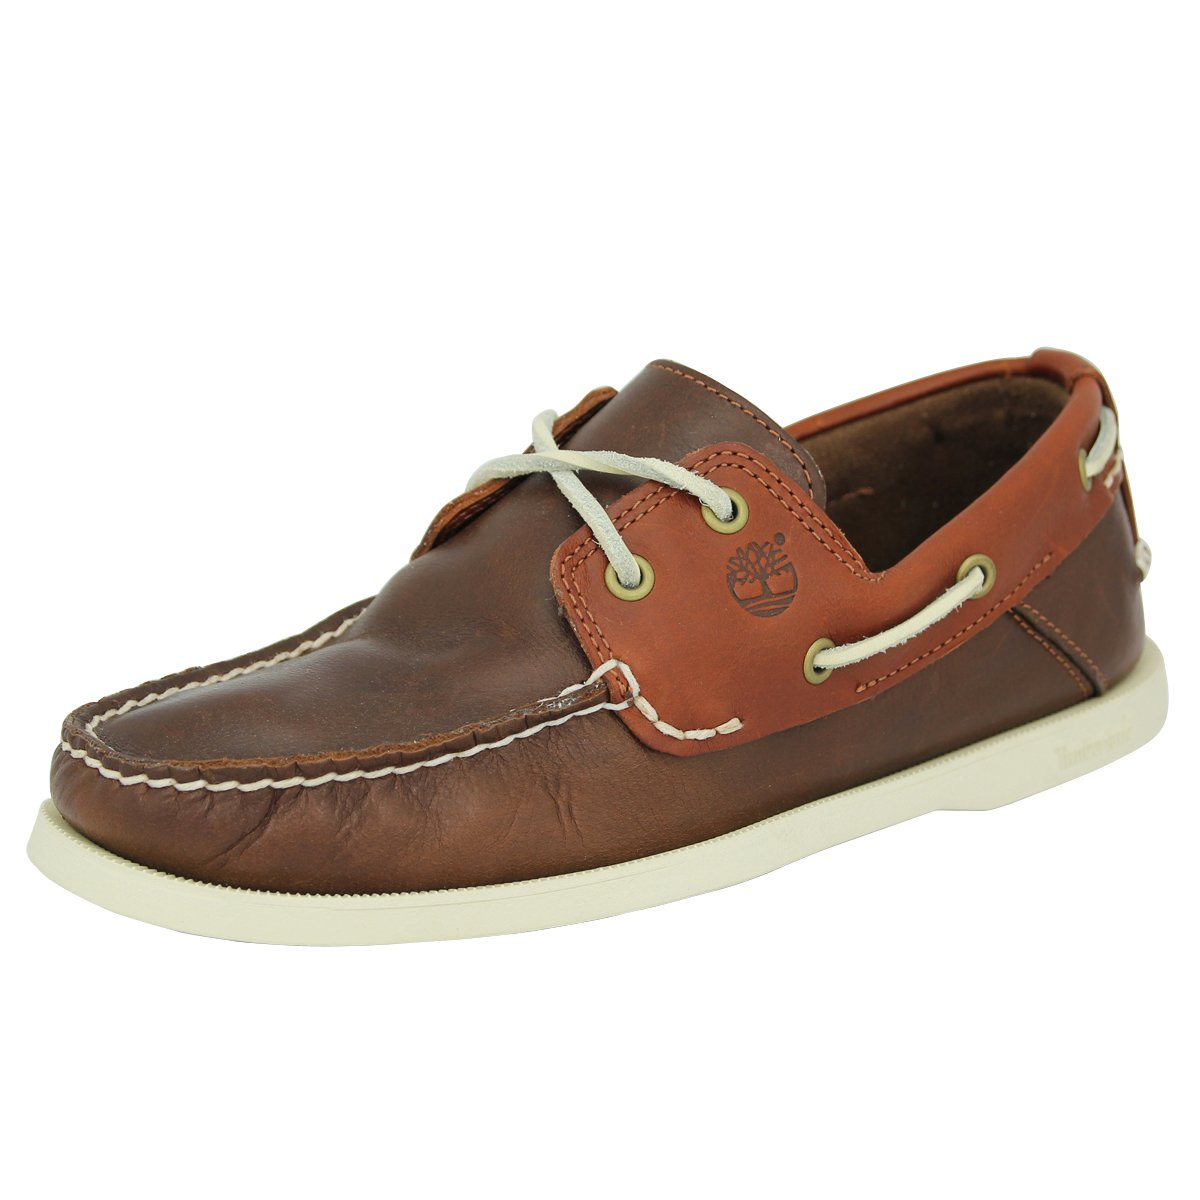 Timberland HERITAGE CW 2 EYE POTT Brown Men Boat Shoes  Amazon.co.uk  Shoes    Bags 649fee3caed6